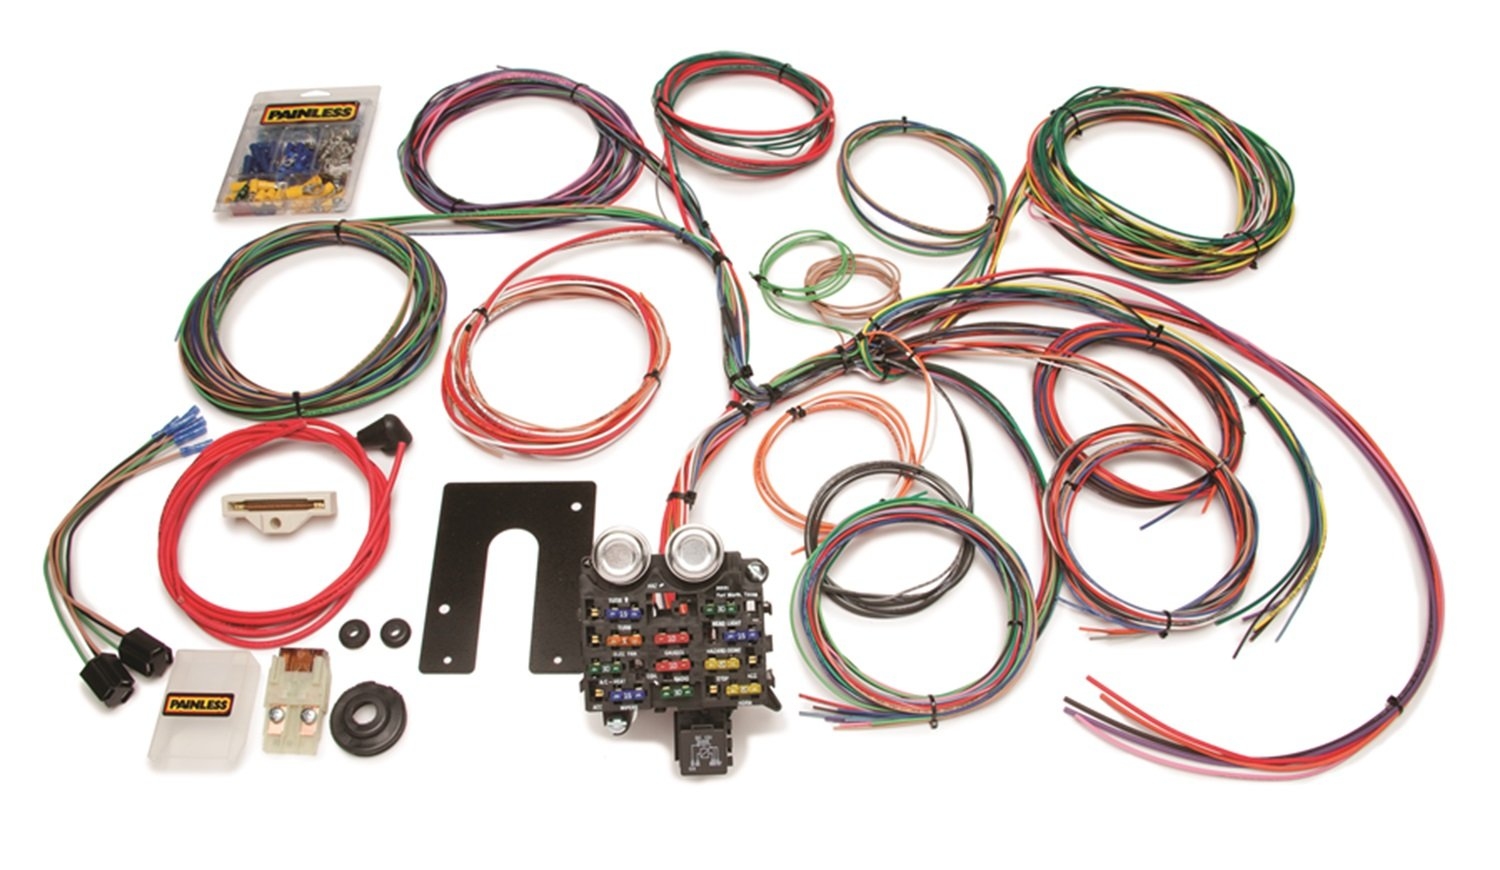 71y4s8BuPyL._SL1500_ amazon com painless wire 10105 wiring harness with firewall painless wiring harness at gsmx.co